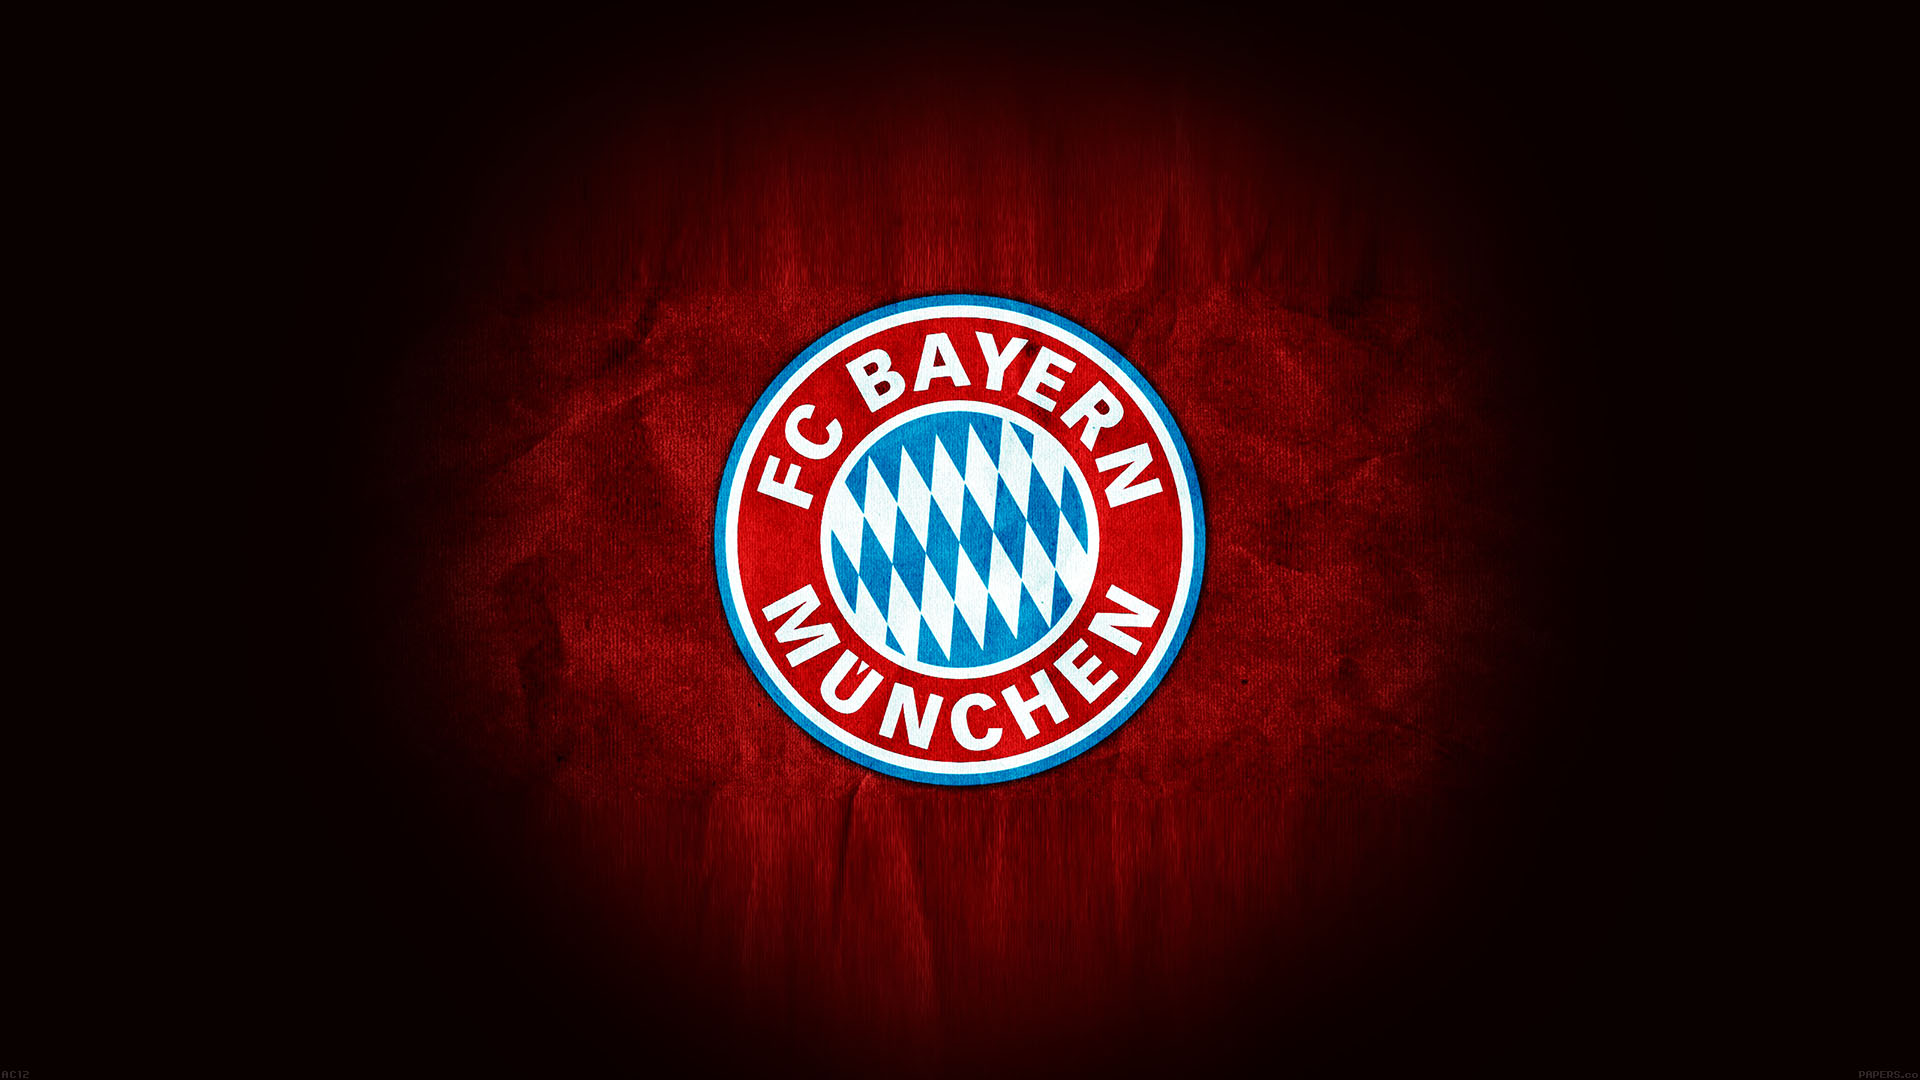 ac12-wallpaper-bayern-munchen-soccer-team-football - Papers.co